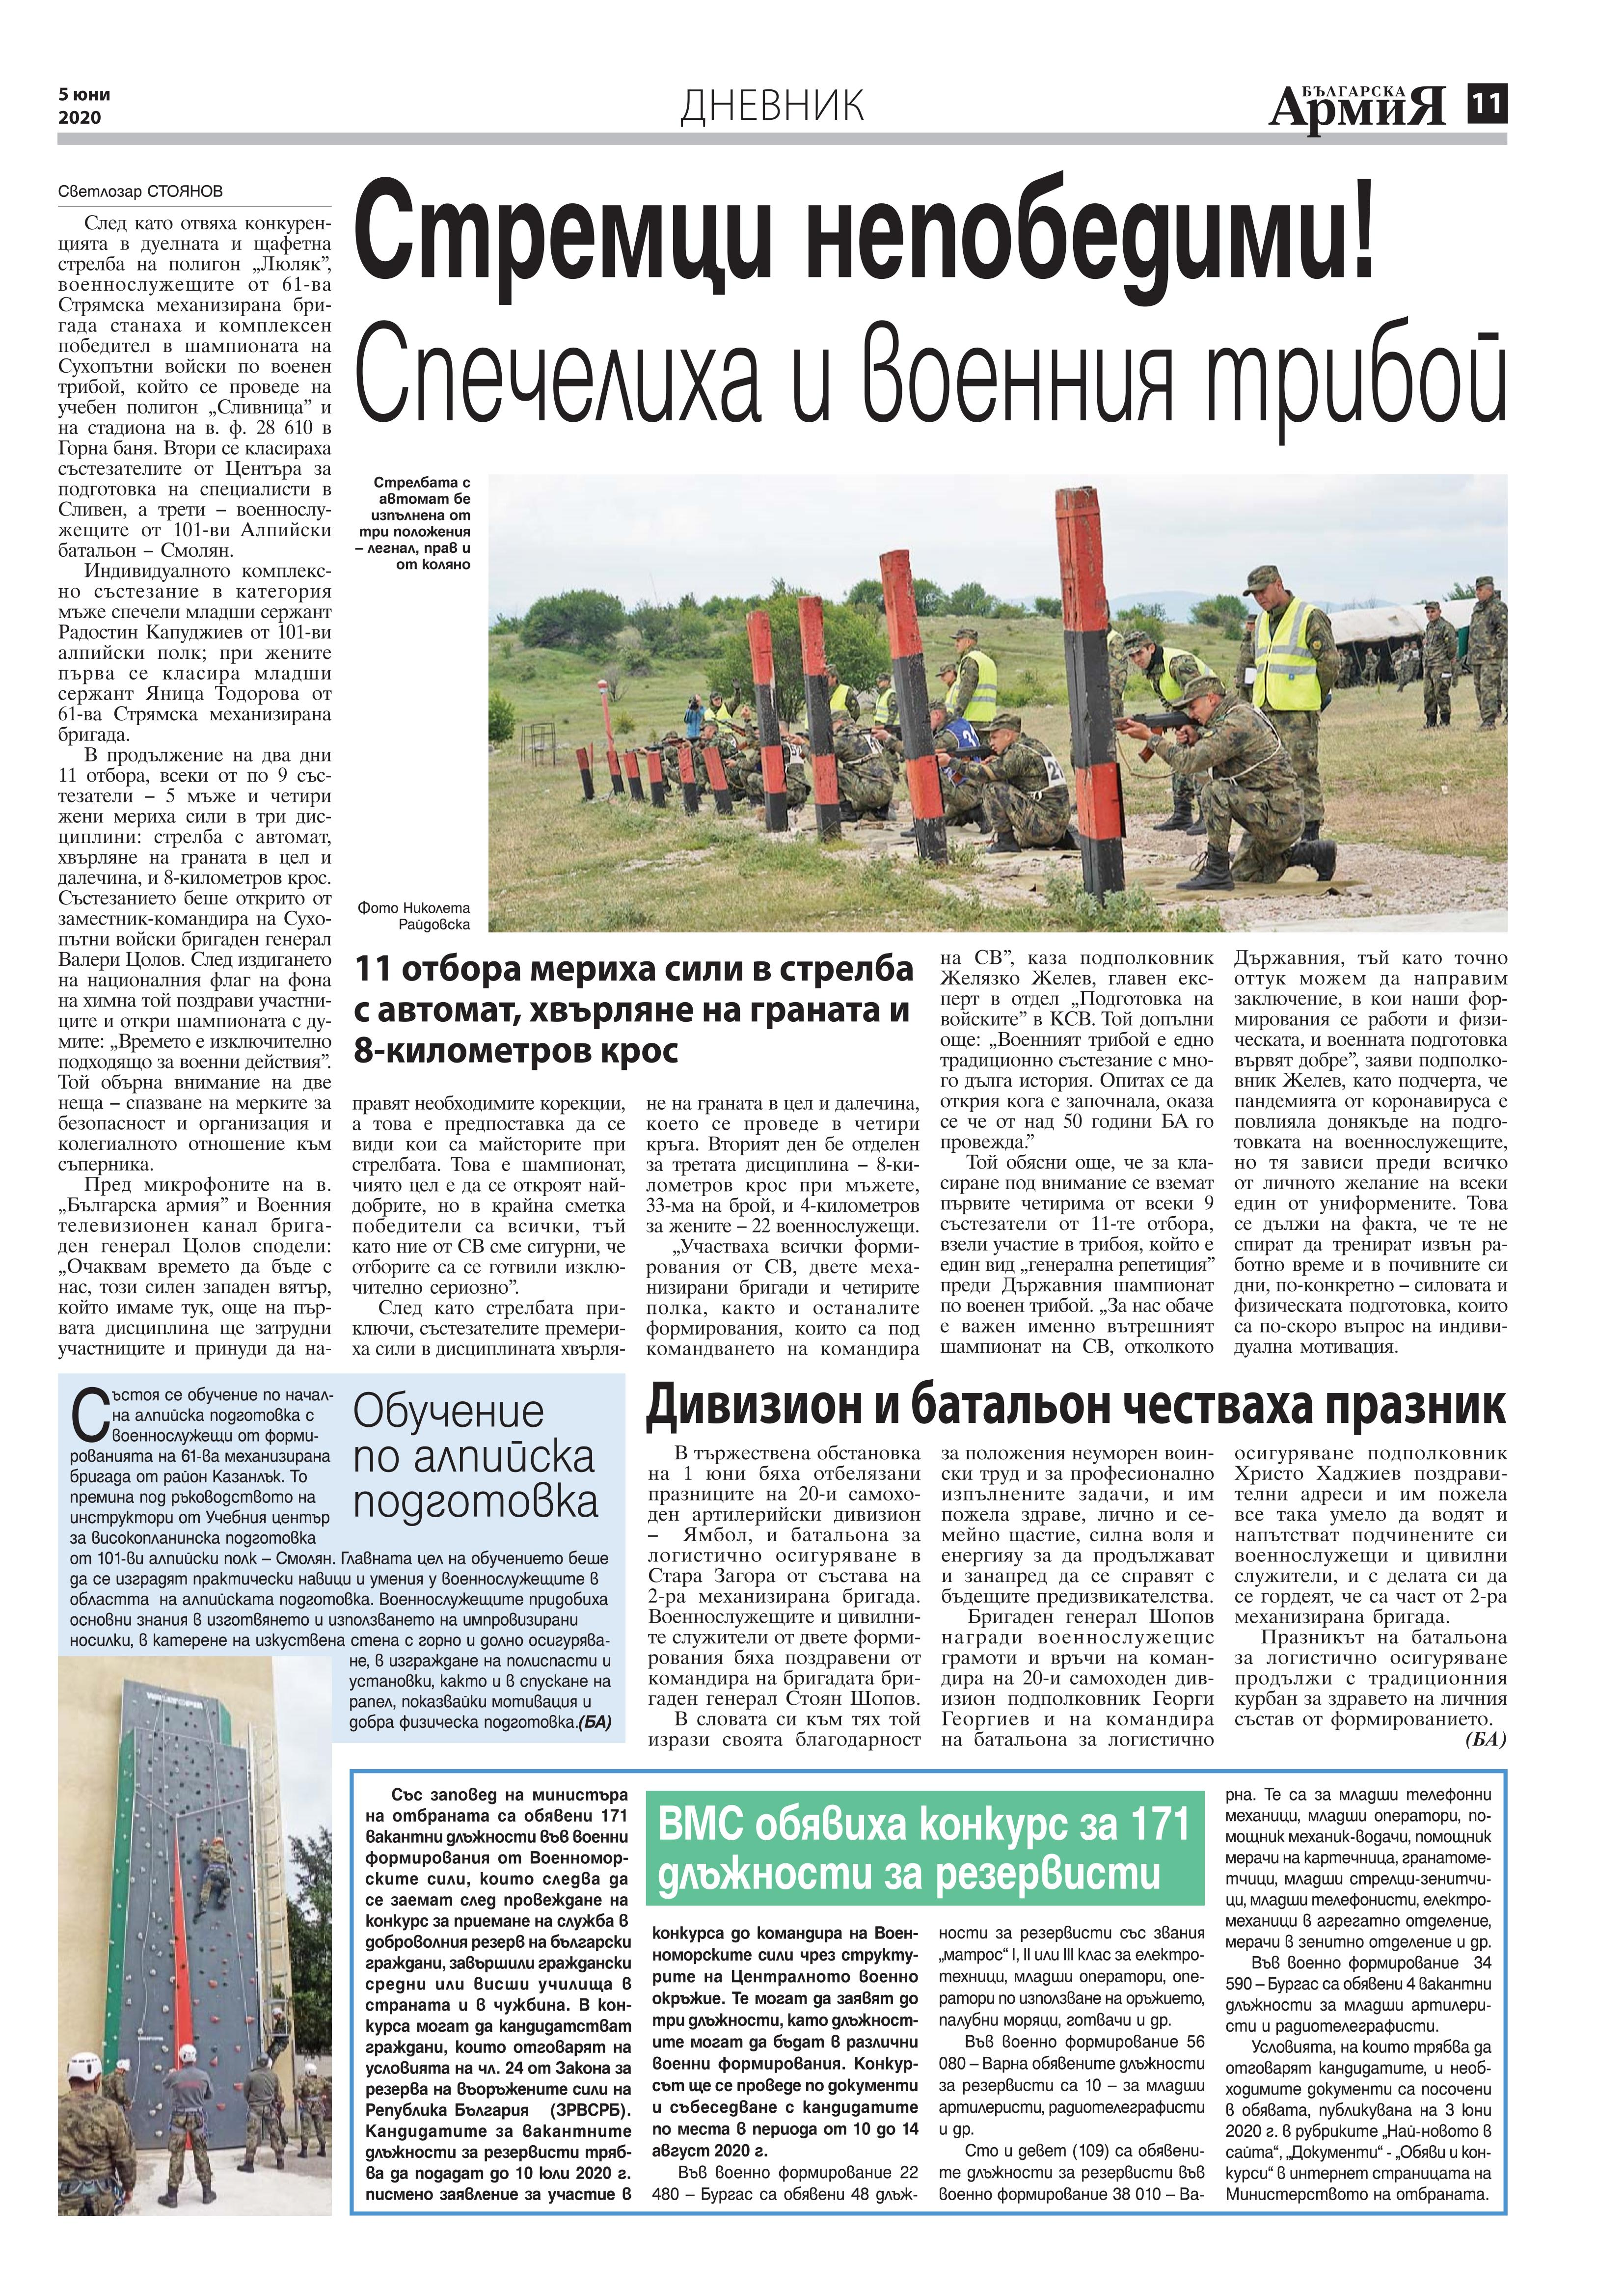 https://armymedia.bg/wp-content/uploads/2015/06/11.page1_-141.jpg